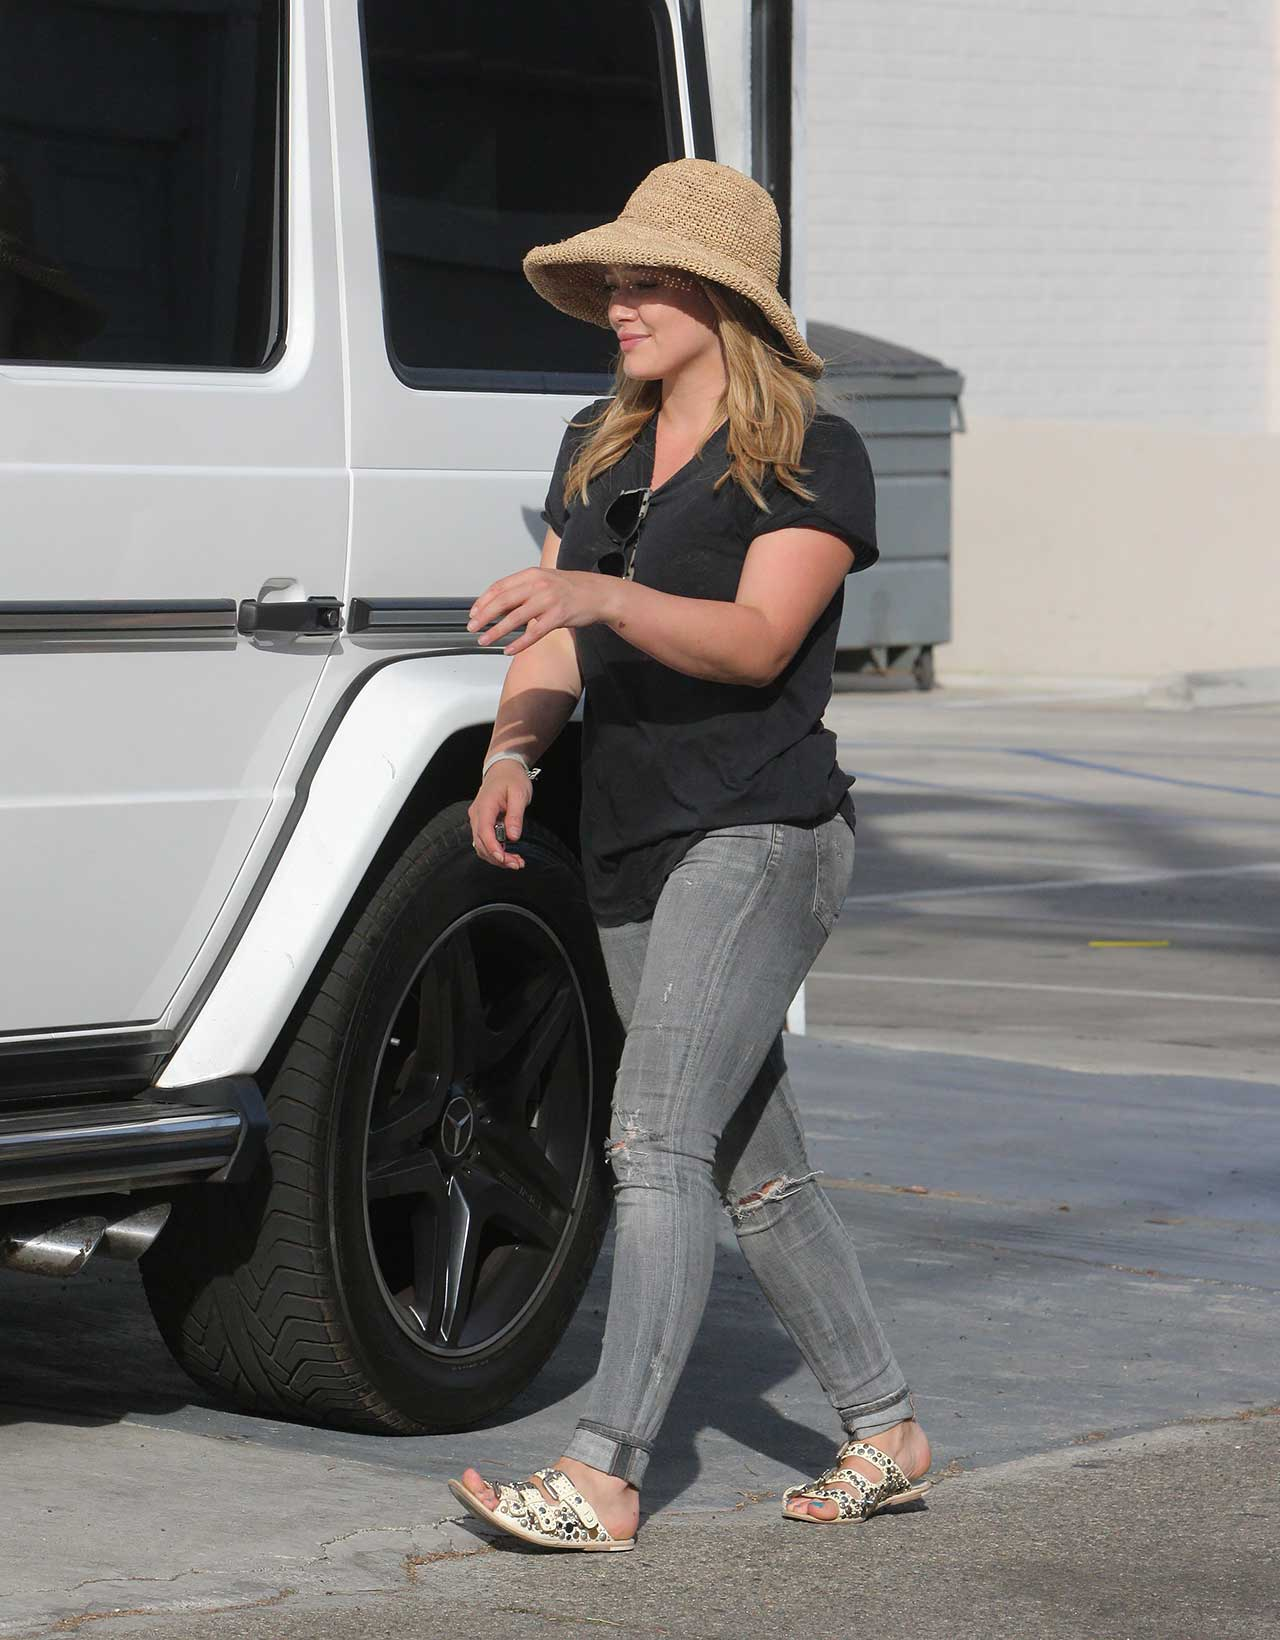 hilary-duff-citizens-of-humanity-rocket-jeans